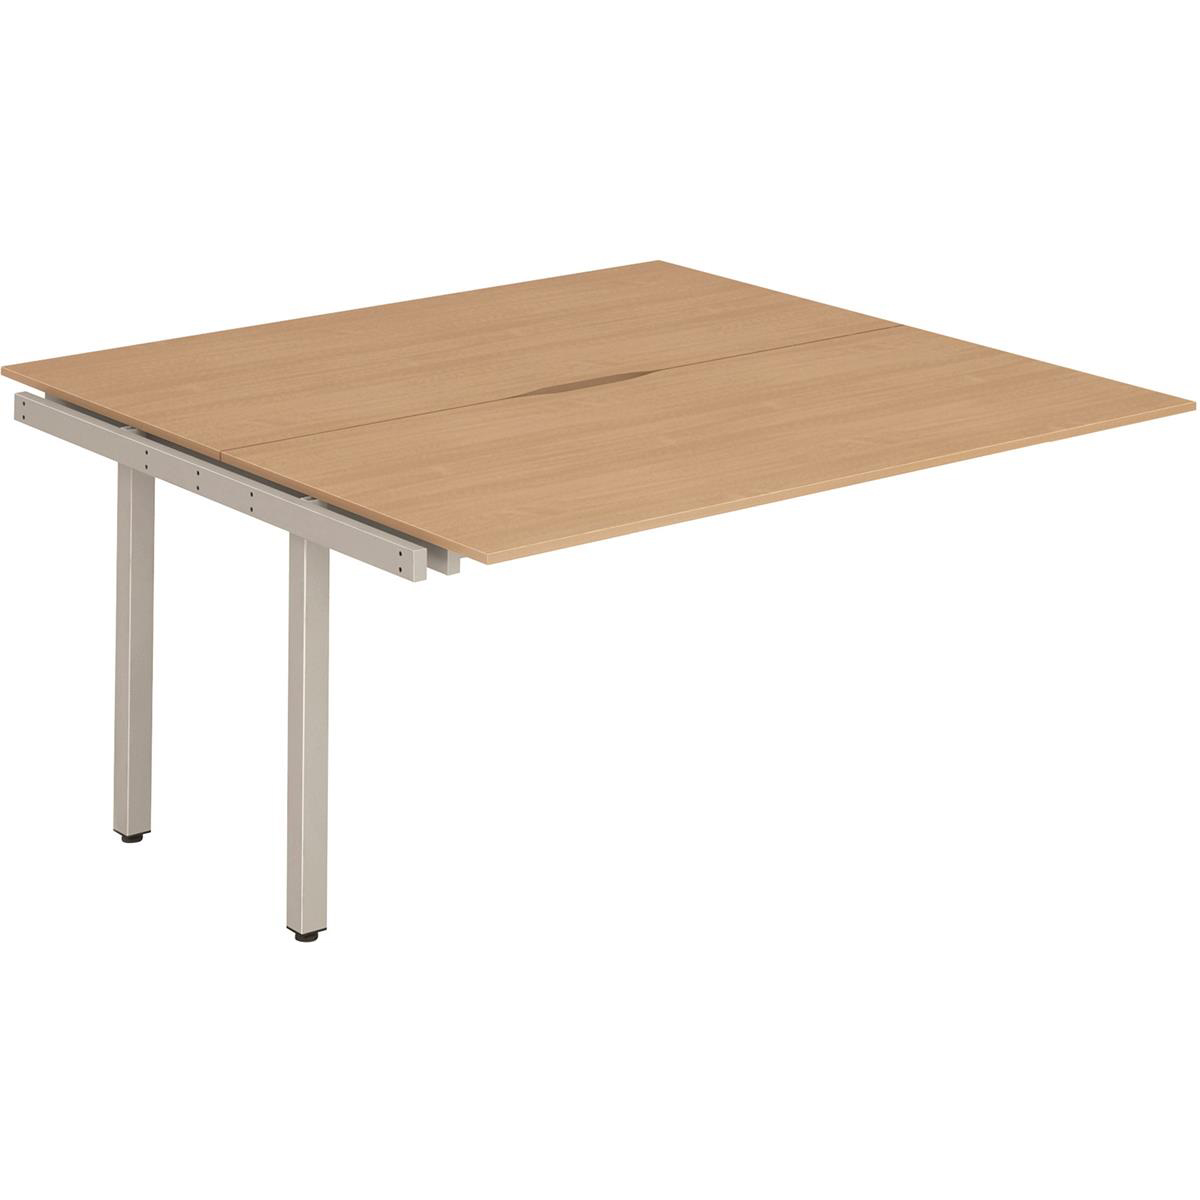 Trexus Bench Desk Double Extension Back to Back Configuration Silver Leg 1200x1600mm Beech Ref BE147